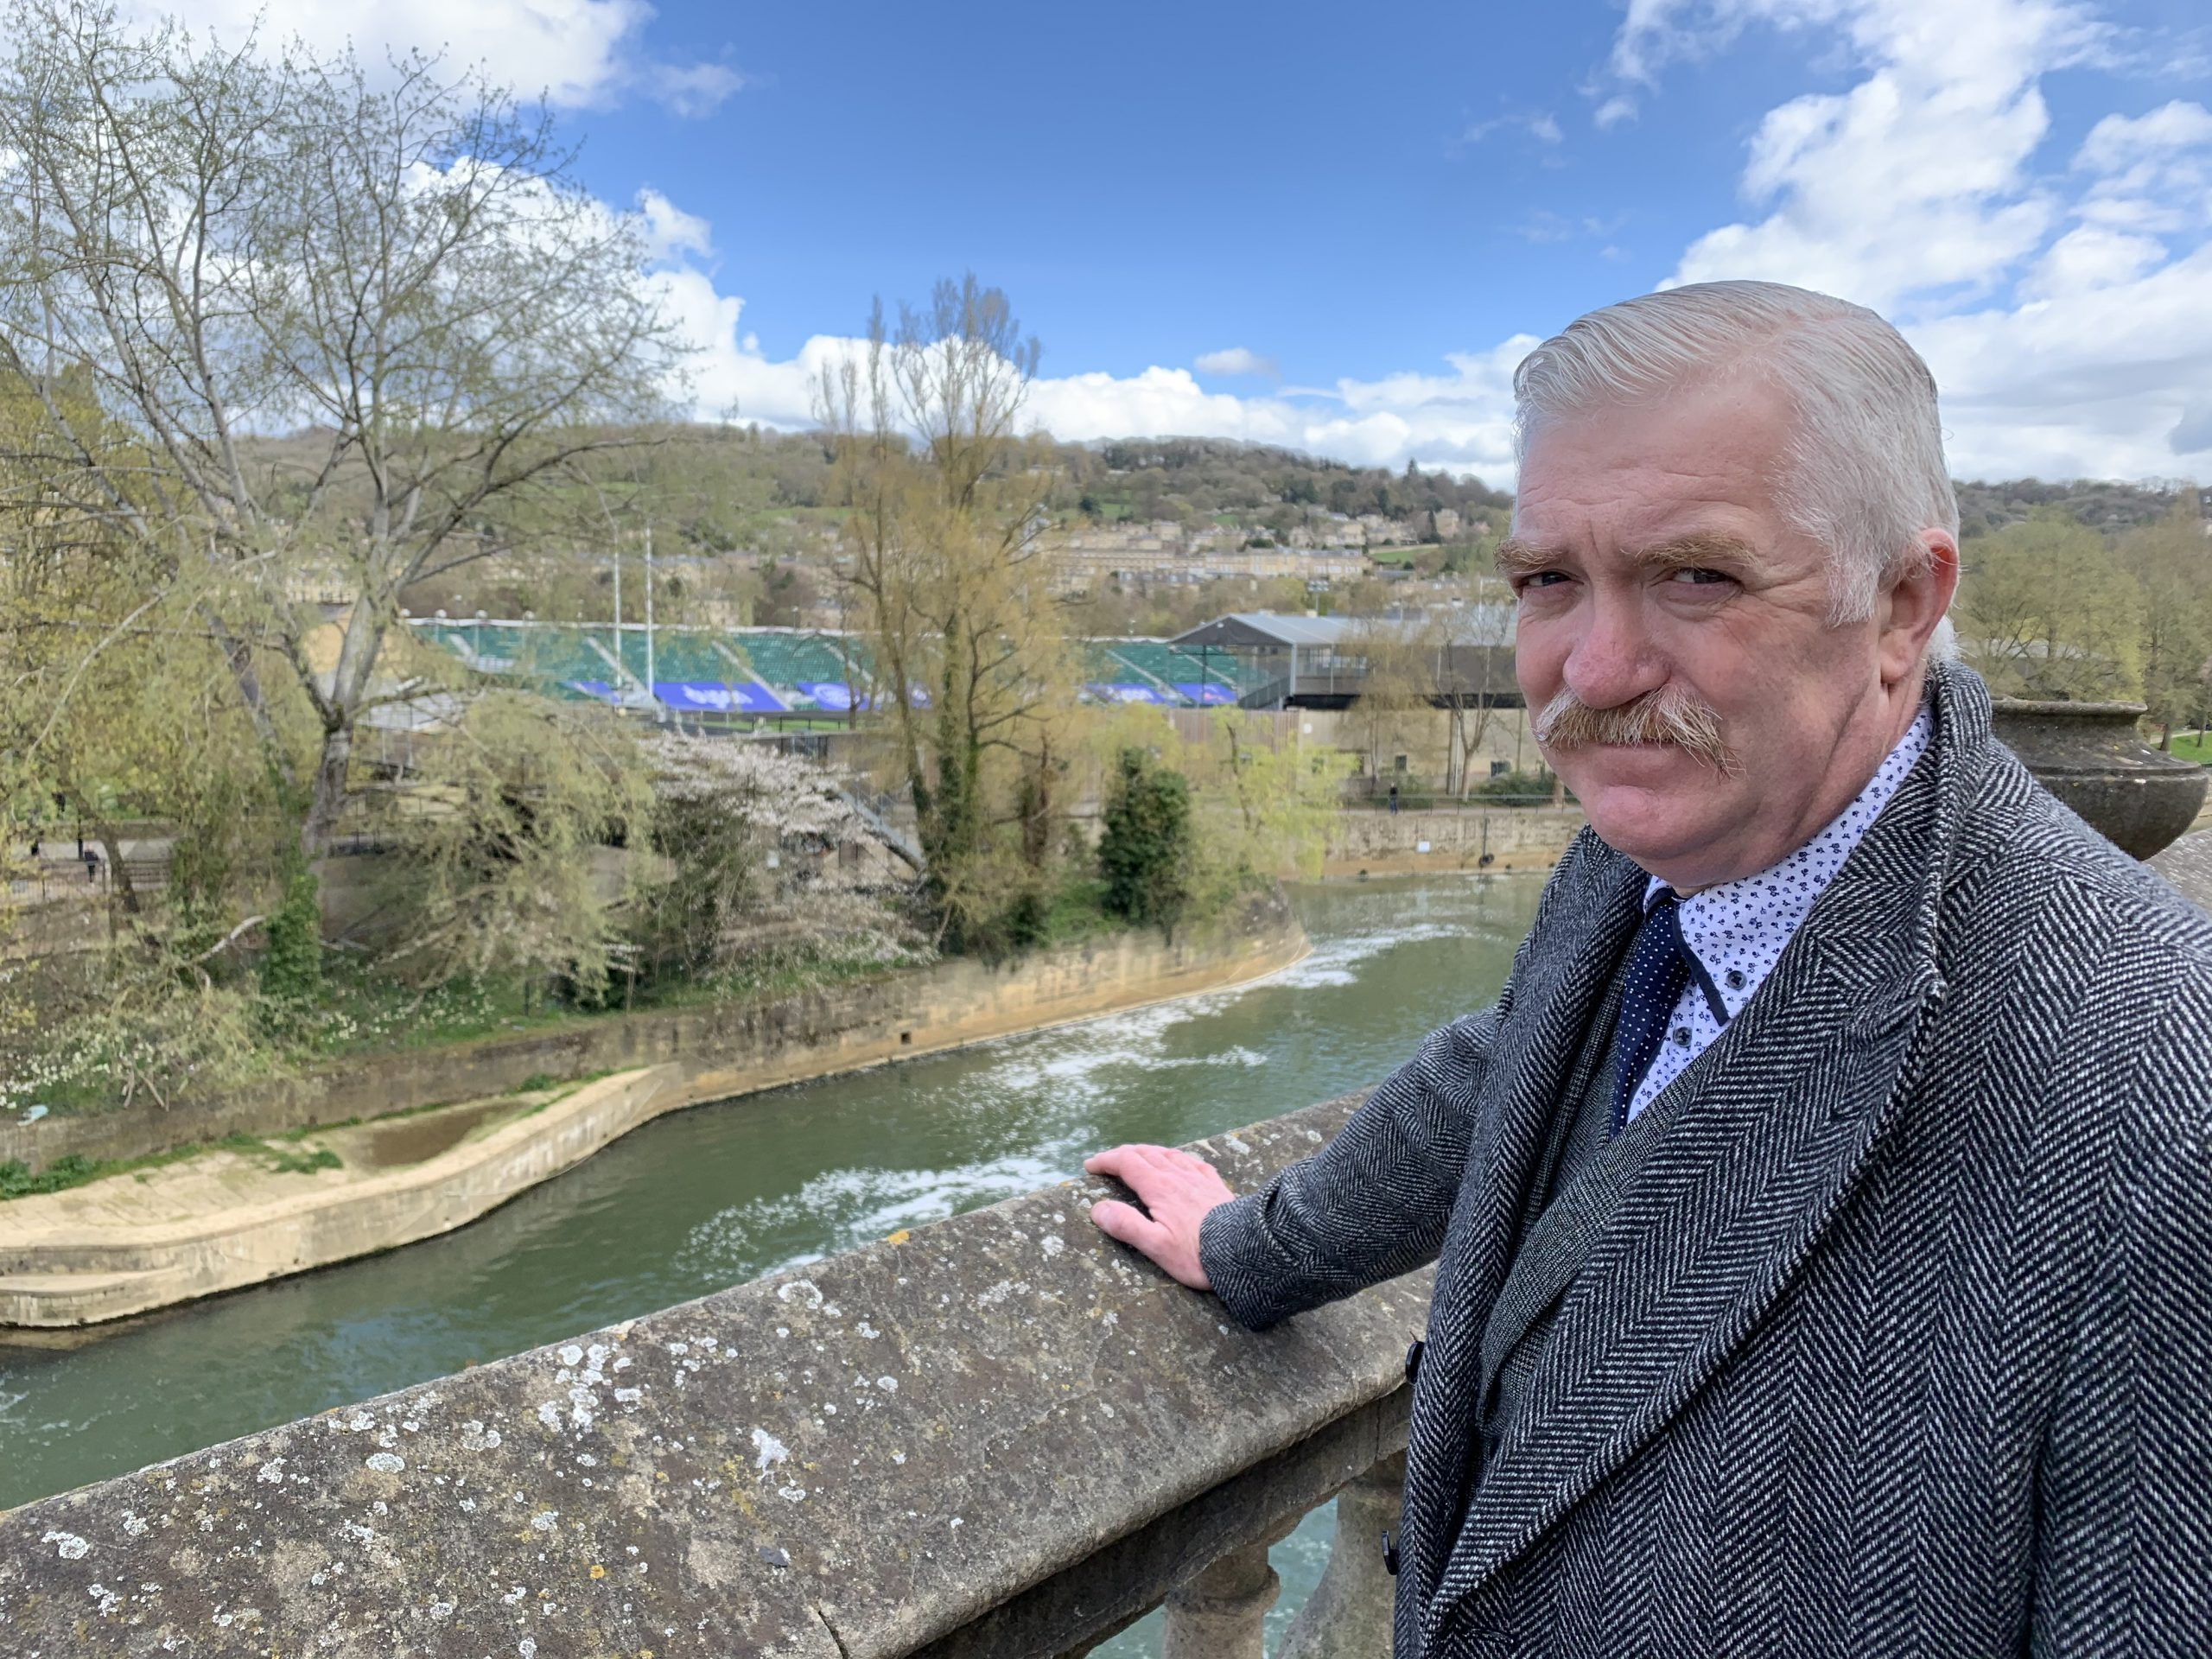 Cllr Paul Myers stands down as Leader of the B&NES Conservative Group